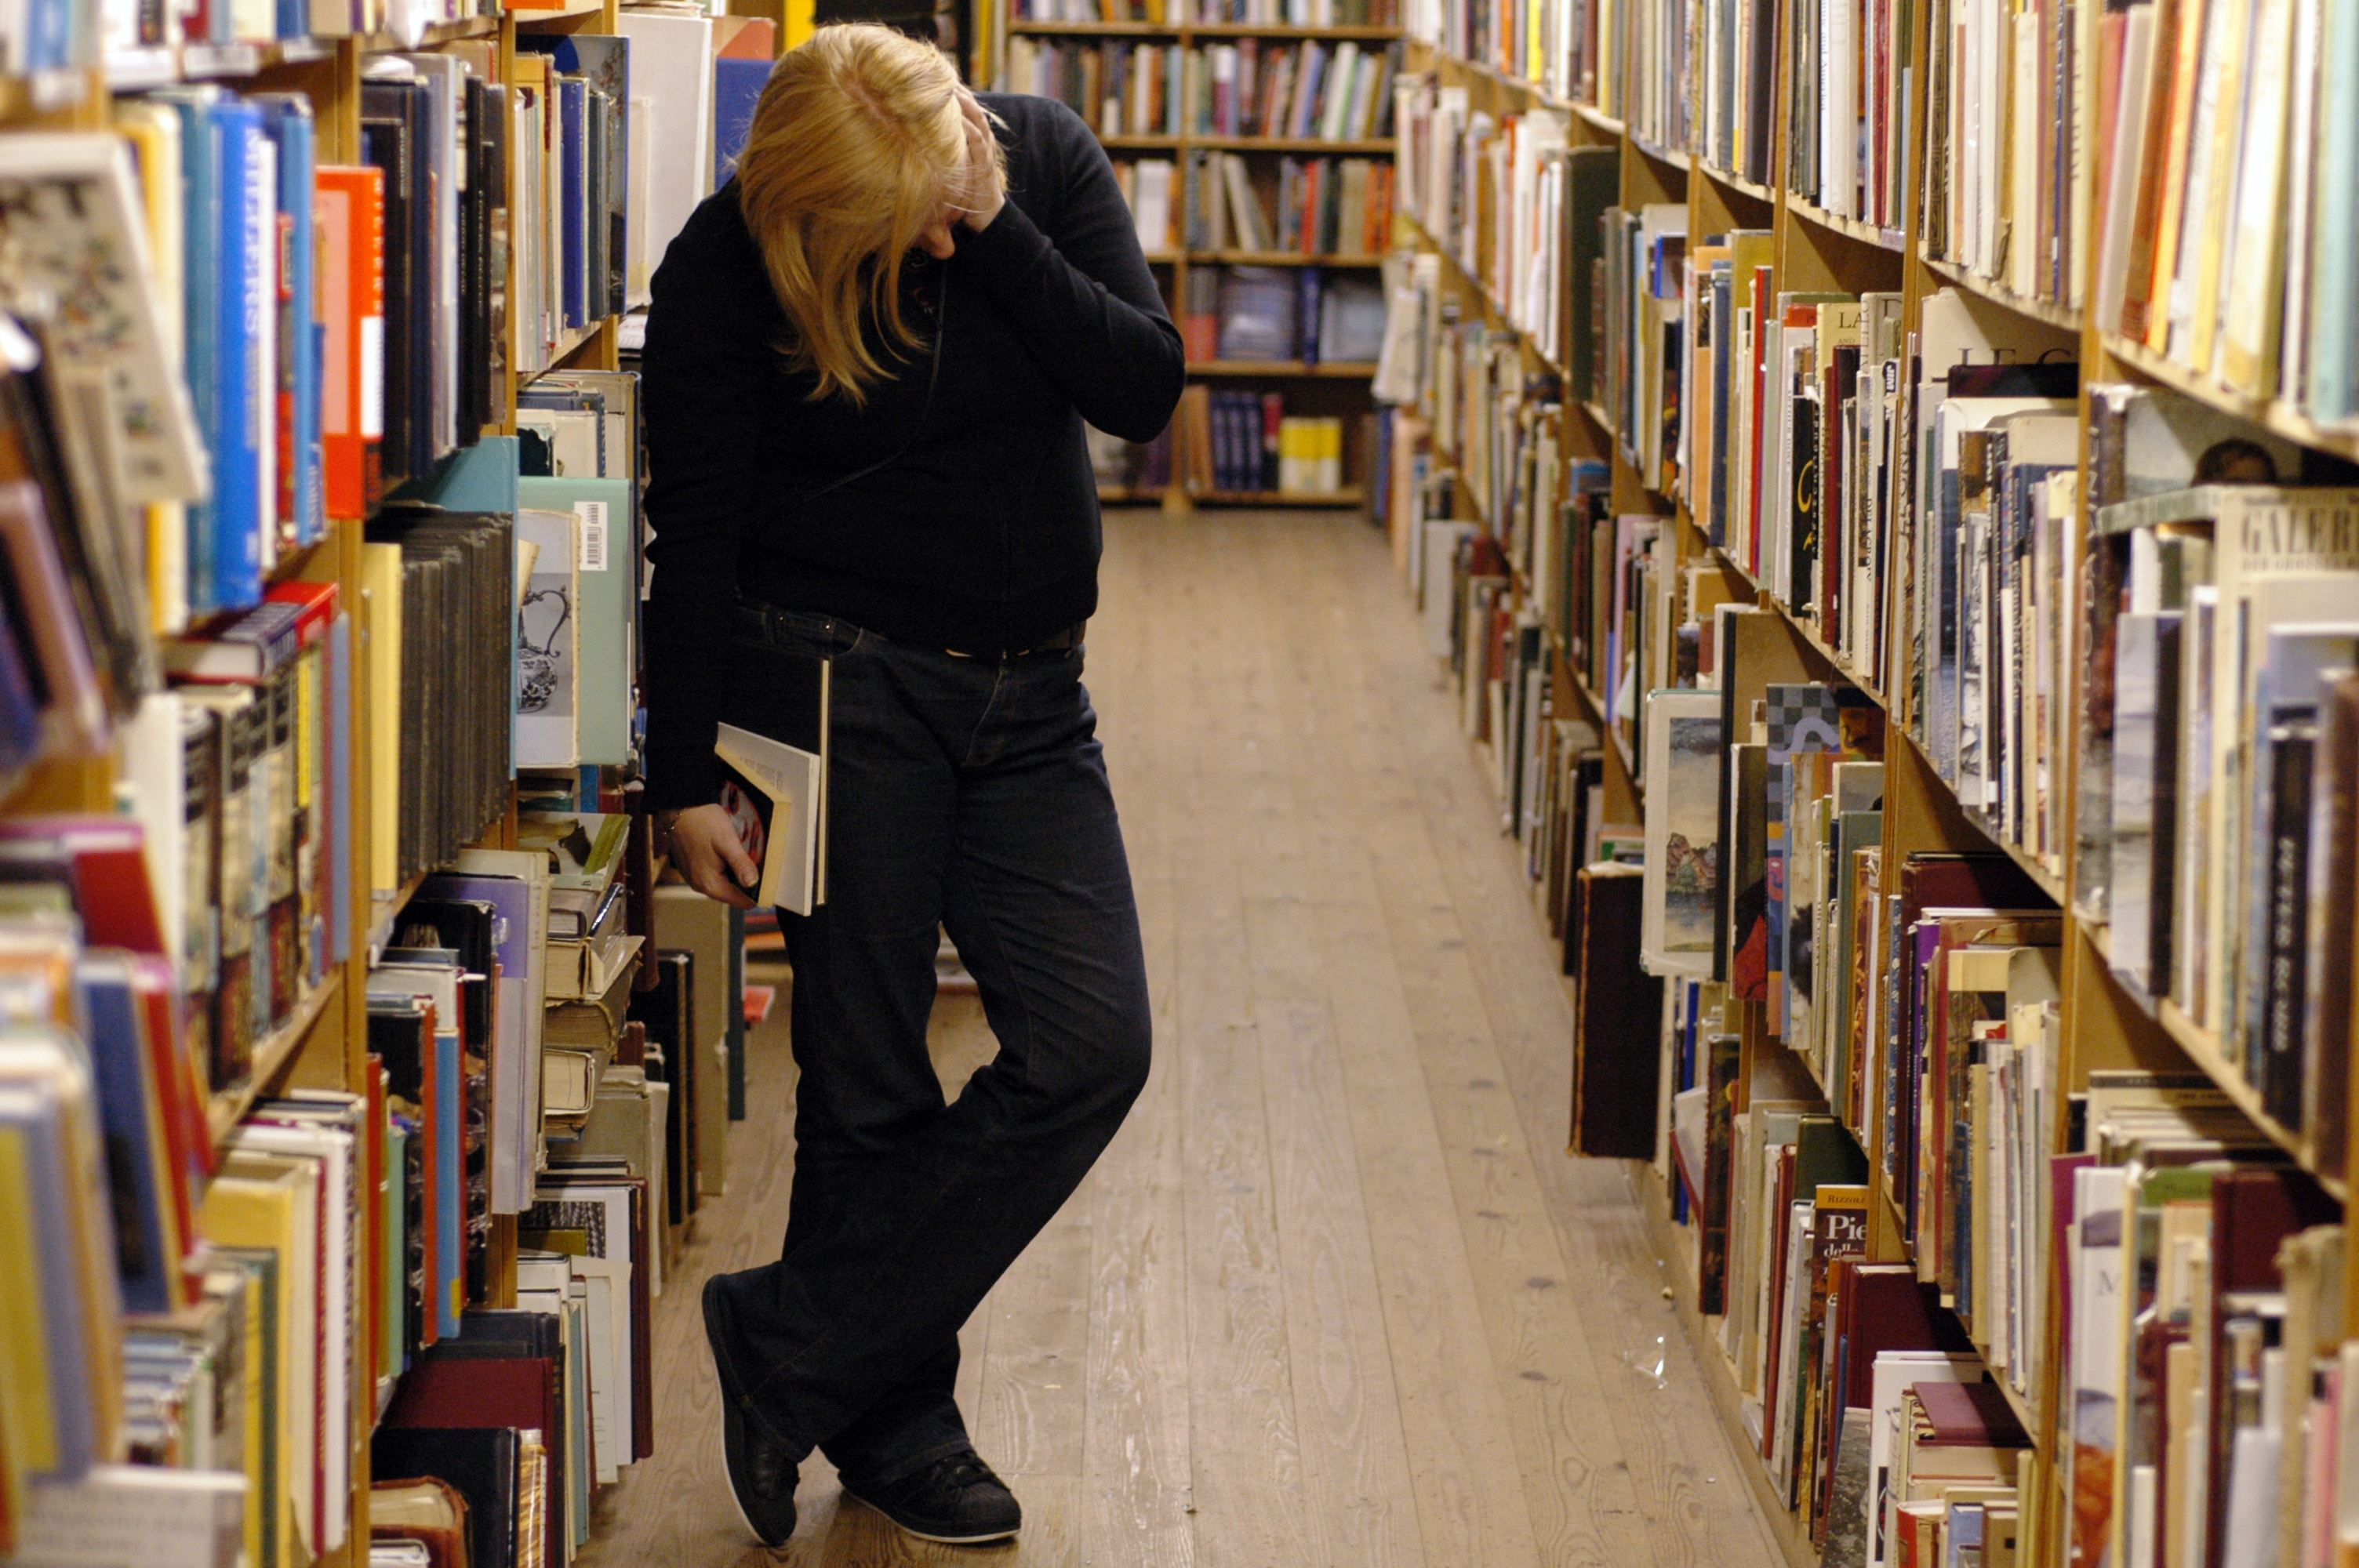 Image result for book browse